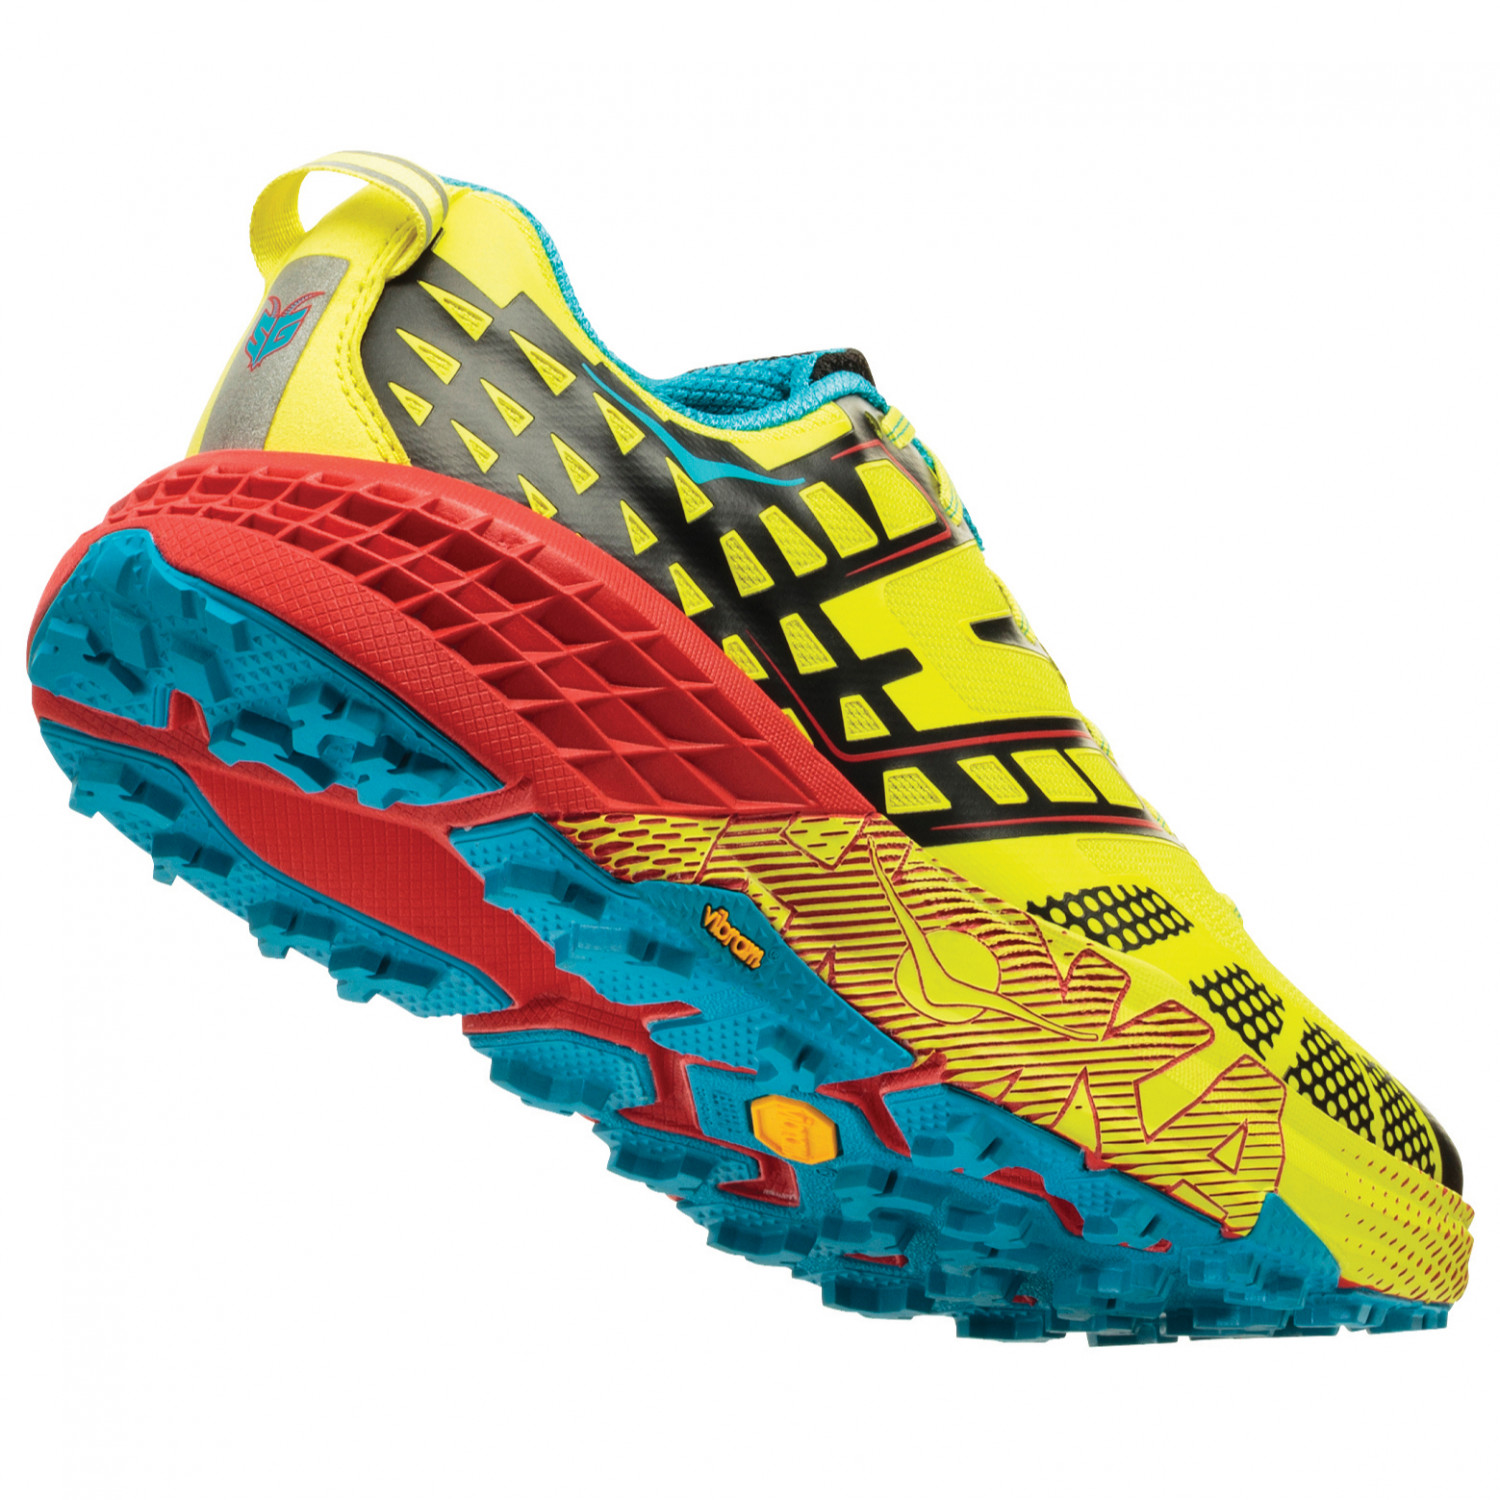 Hoka One One yellow Speedgoat 2 lace-up sneakers new arrival clearance excellent outlet shop best prices cheap sale official RwNOpR29